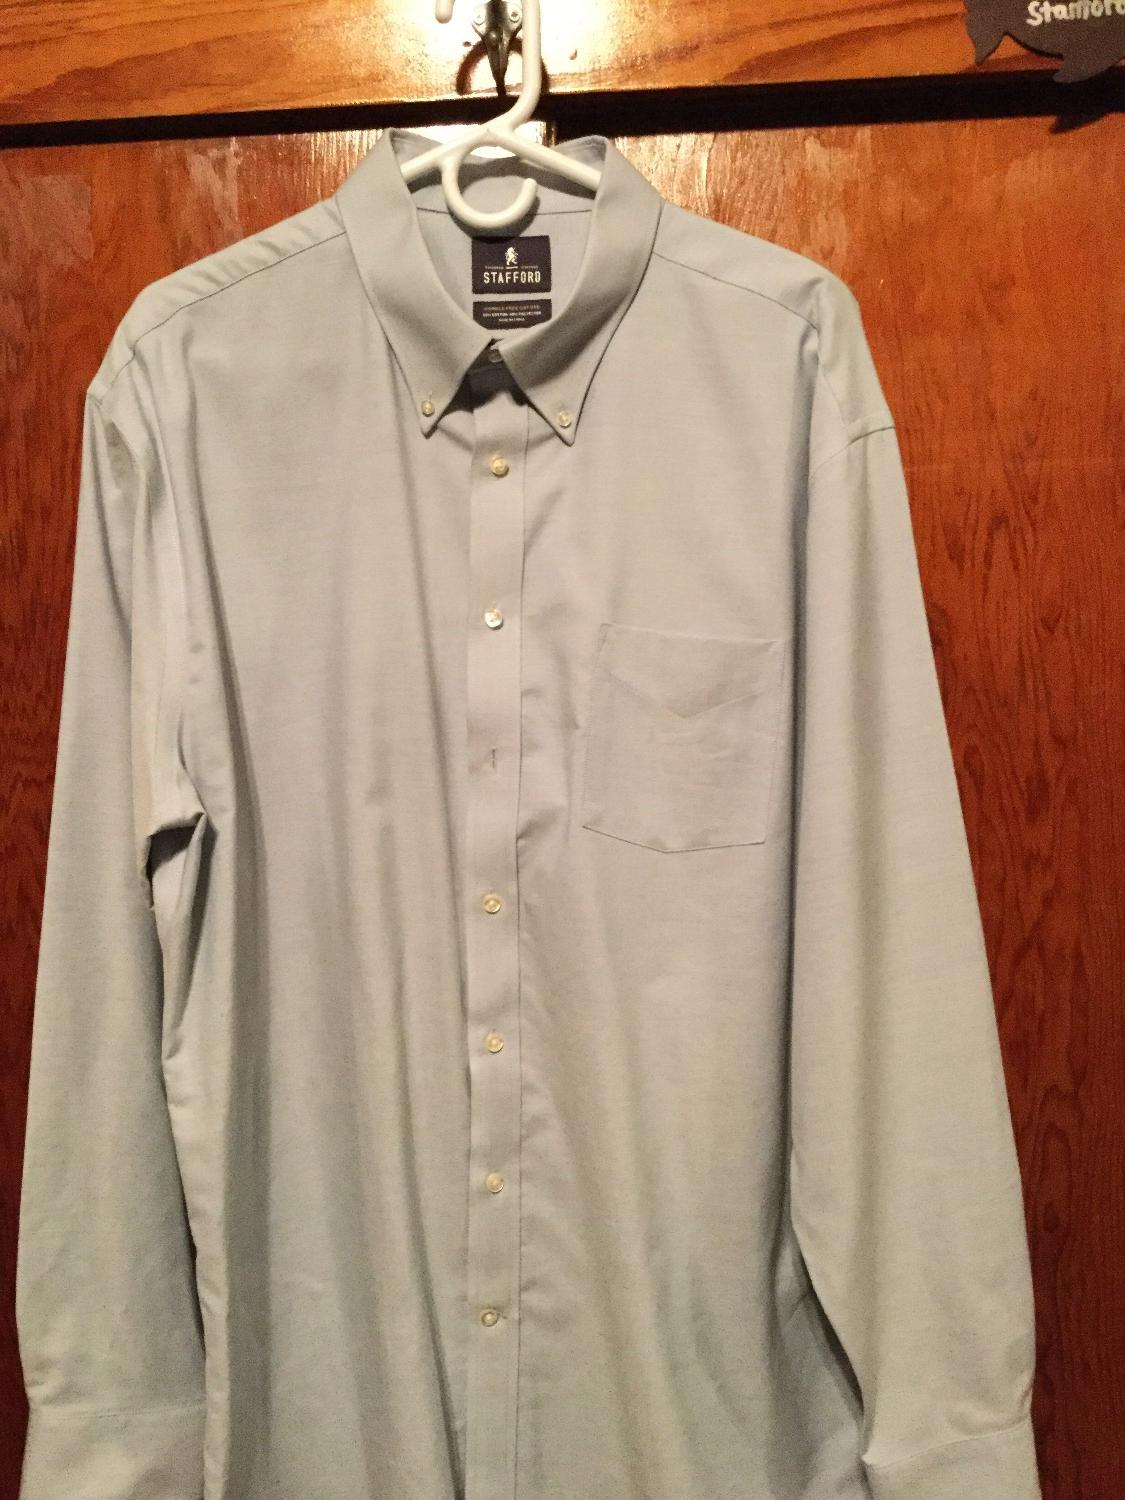 Best blue stafford men 39 s dress shirt 8 for sale in for Where to buy stafford dress shirts